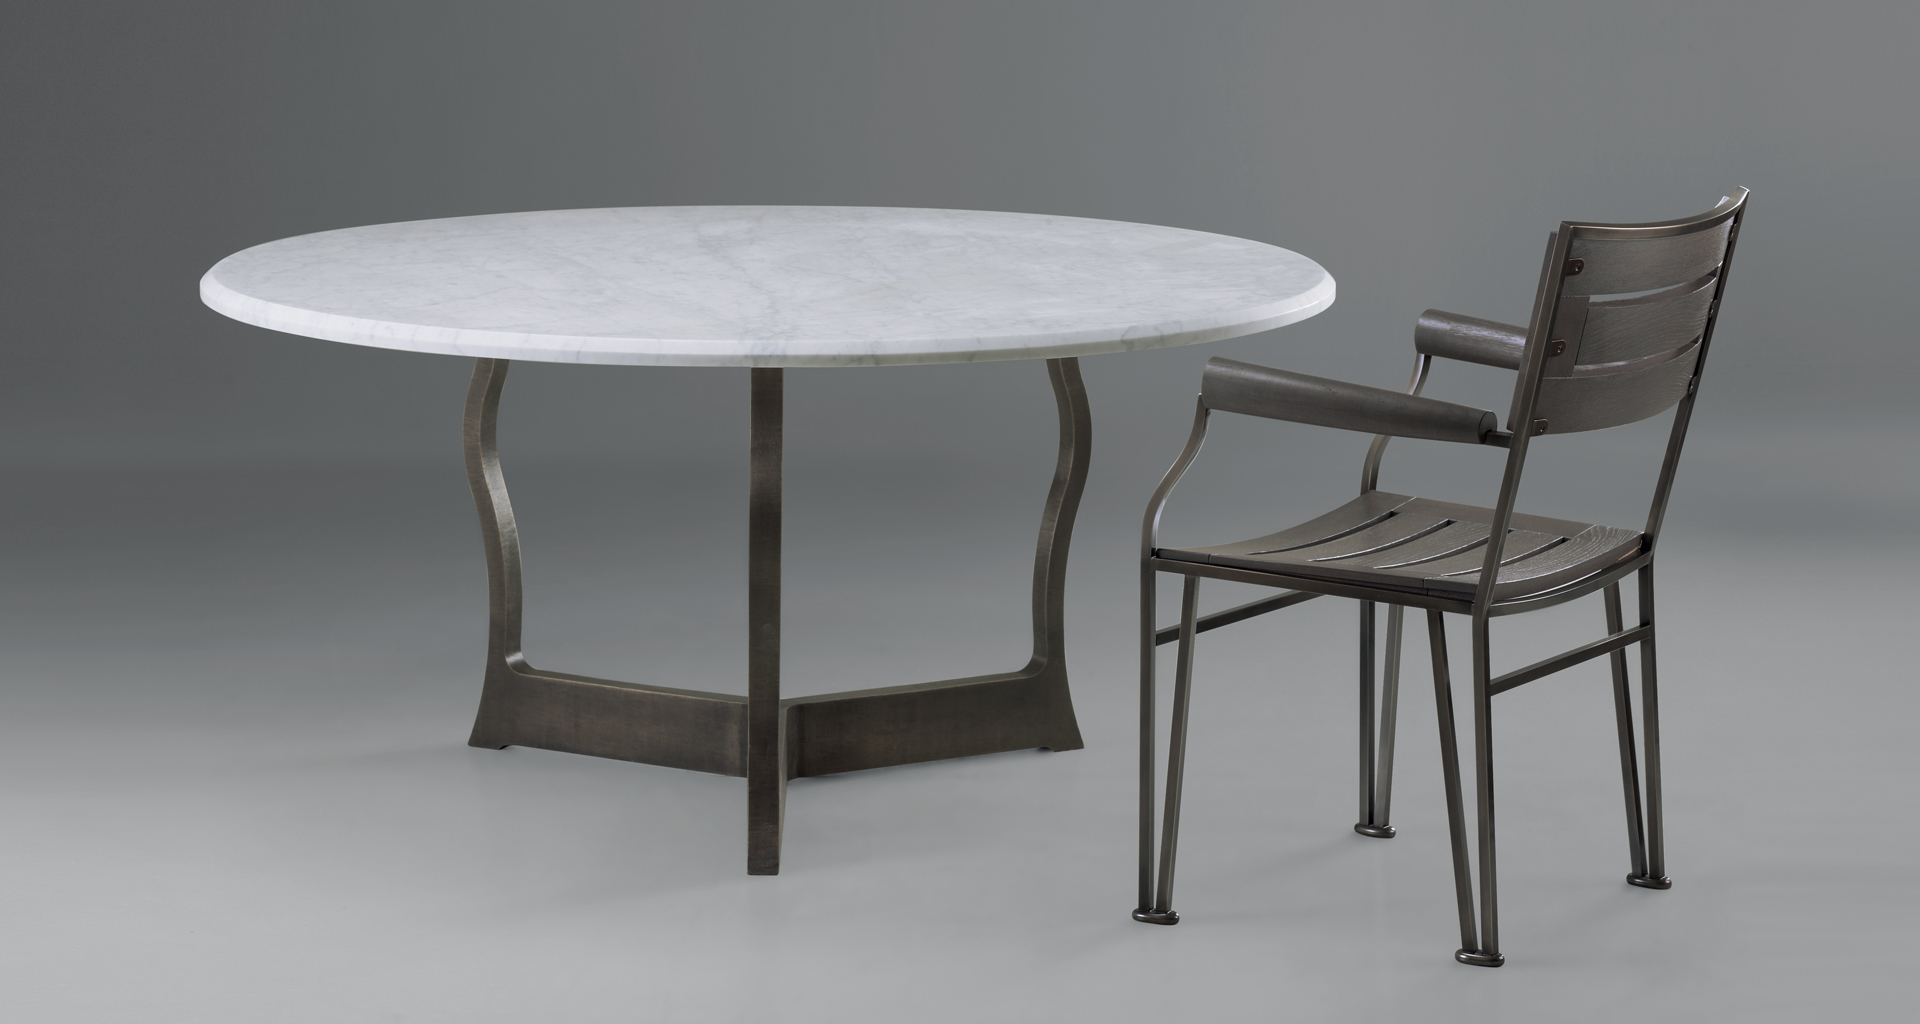 Erasmo is an outdoor dining table with bronze base and marble top, from Promemoria's outdoor catalogue | Promemoria